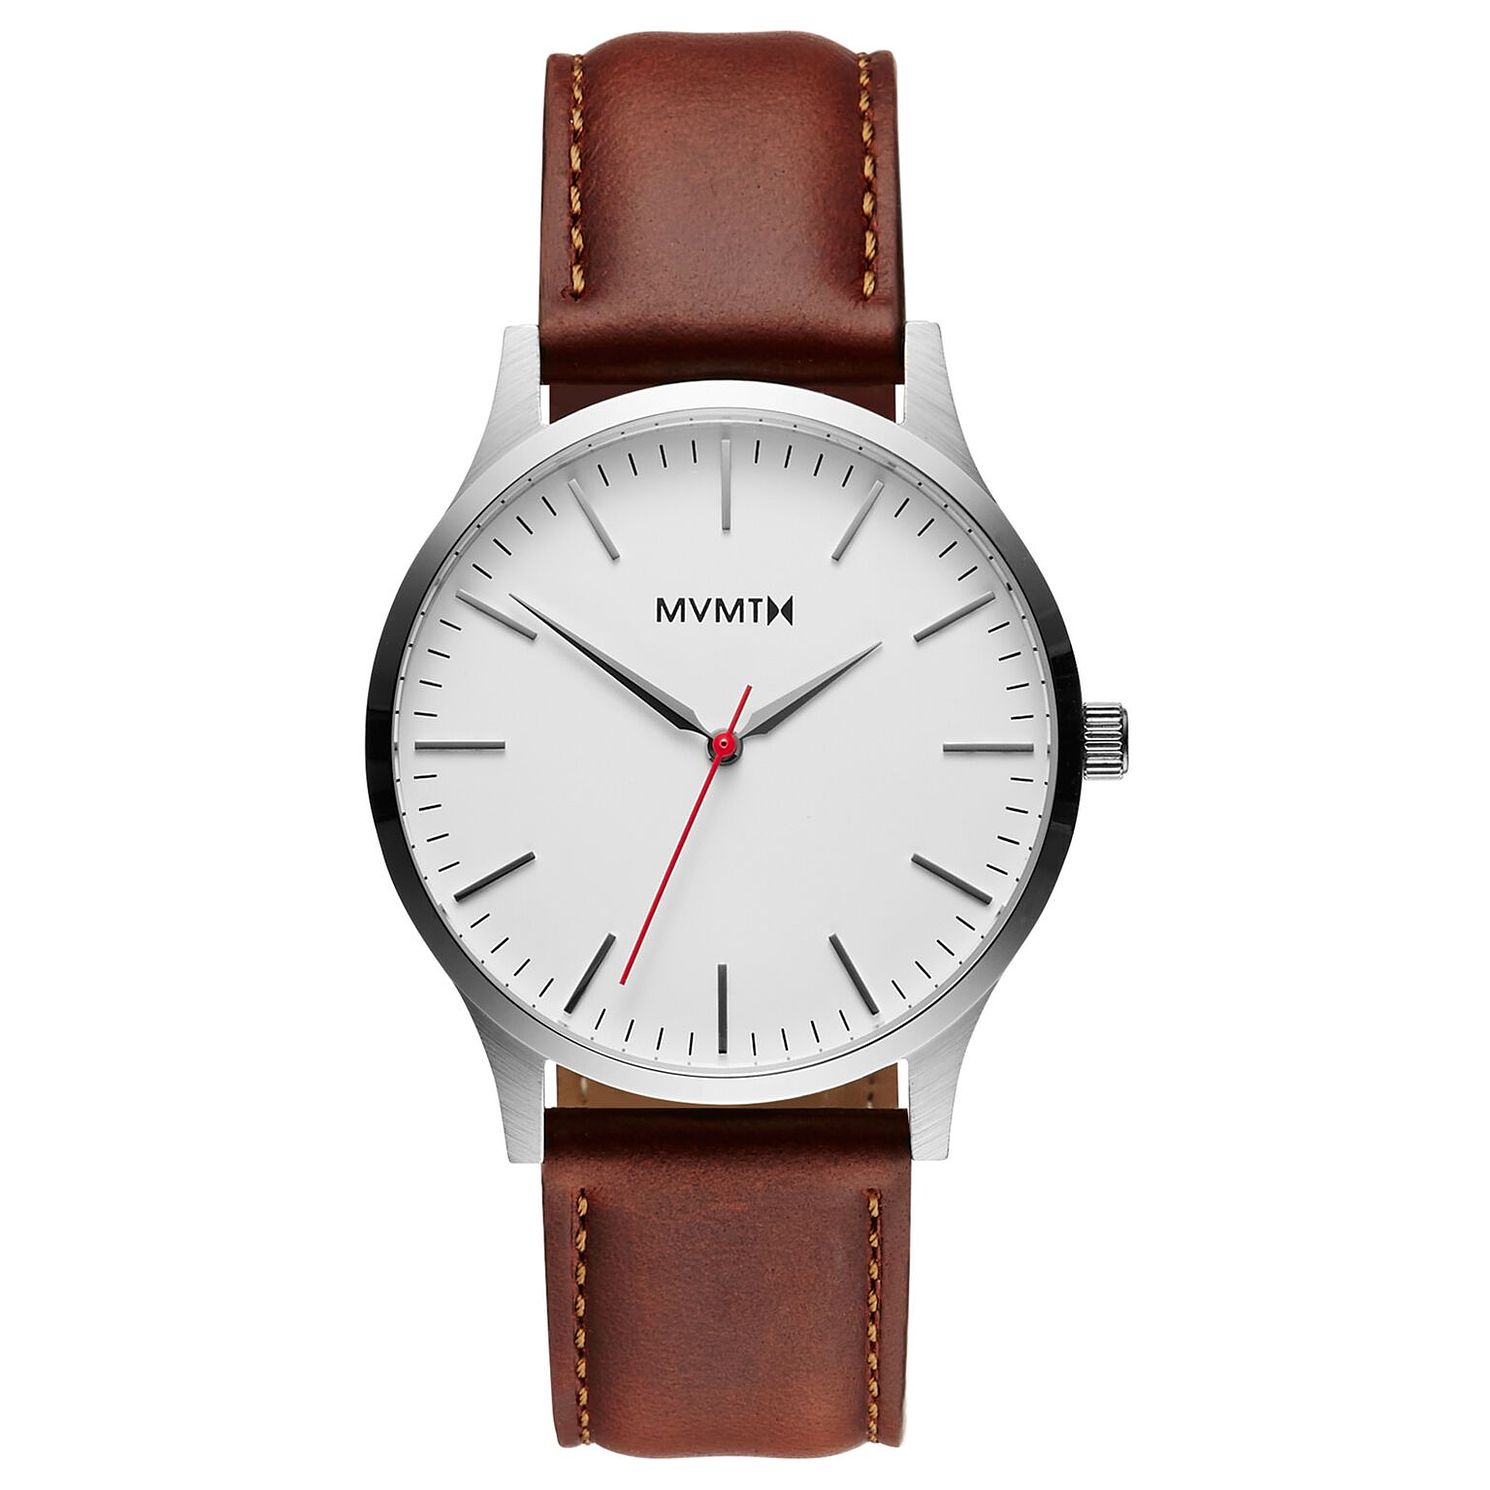 MVMT 40 Series Men's Brown Leather Strap Watch - Product number 2647702